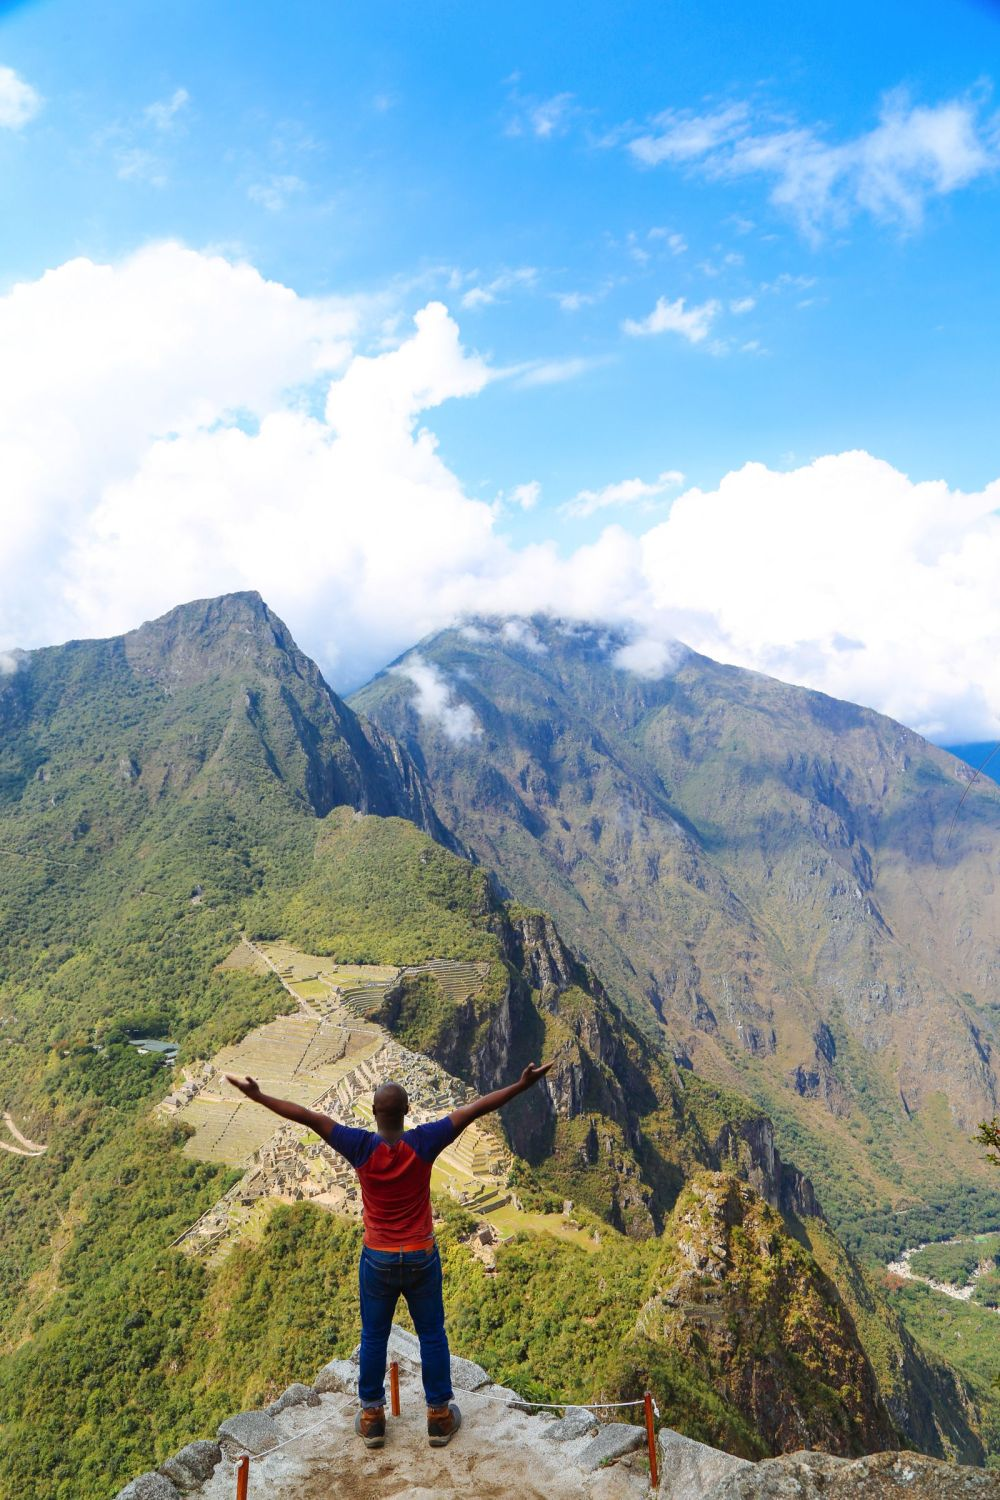 This Is The Most Unique View Of Machu Picchu – At The Top Of Huayna Picchu Mountain (27)